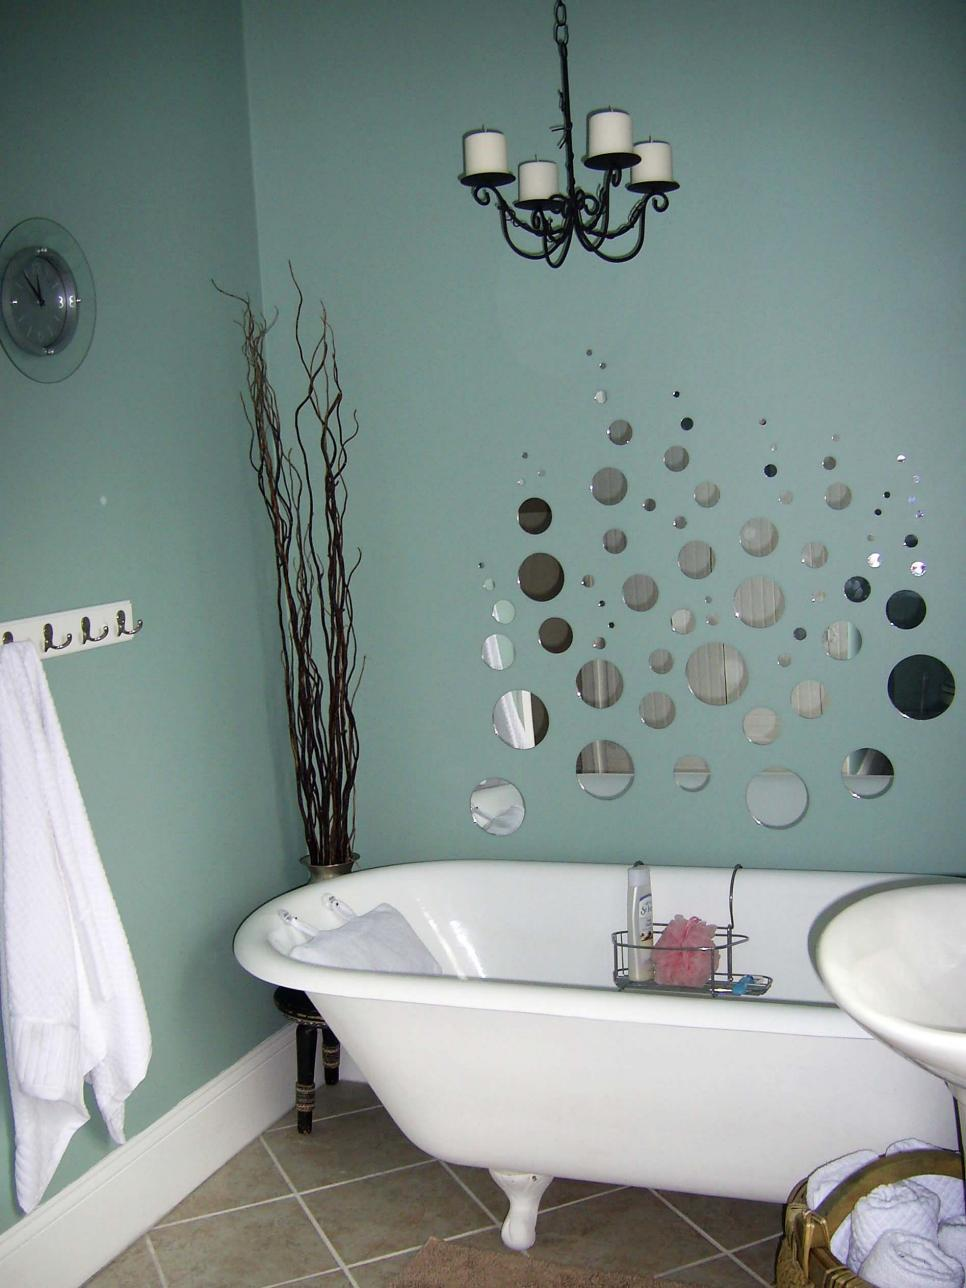 Bathrooms on a budget our 10 favorites from rate my space Remodeling your bathroom on a budget